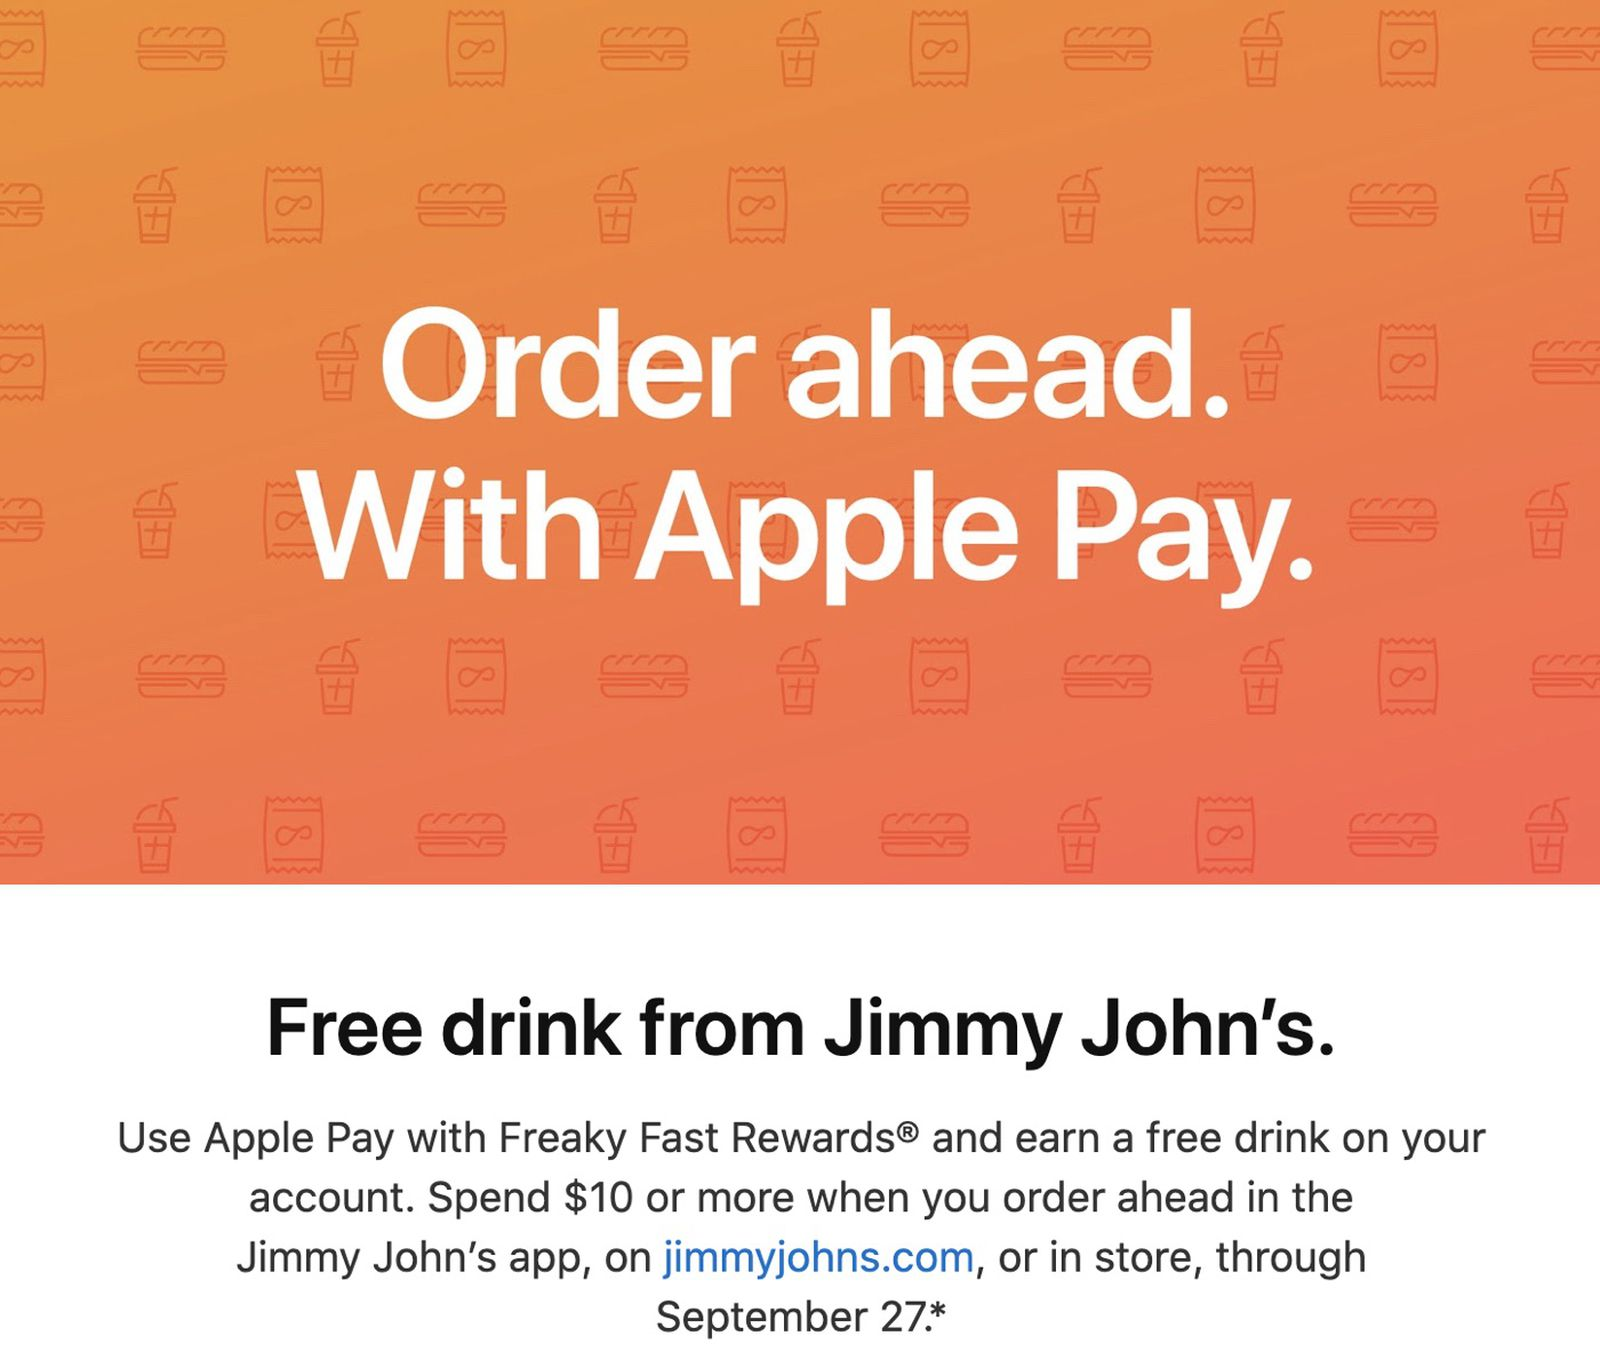 photo of Apple Pay Promo Offers Free Drink With Purchase From Jimmy John's image